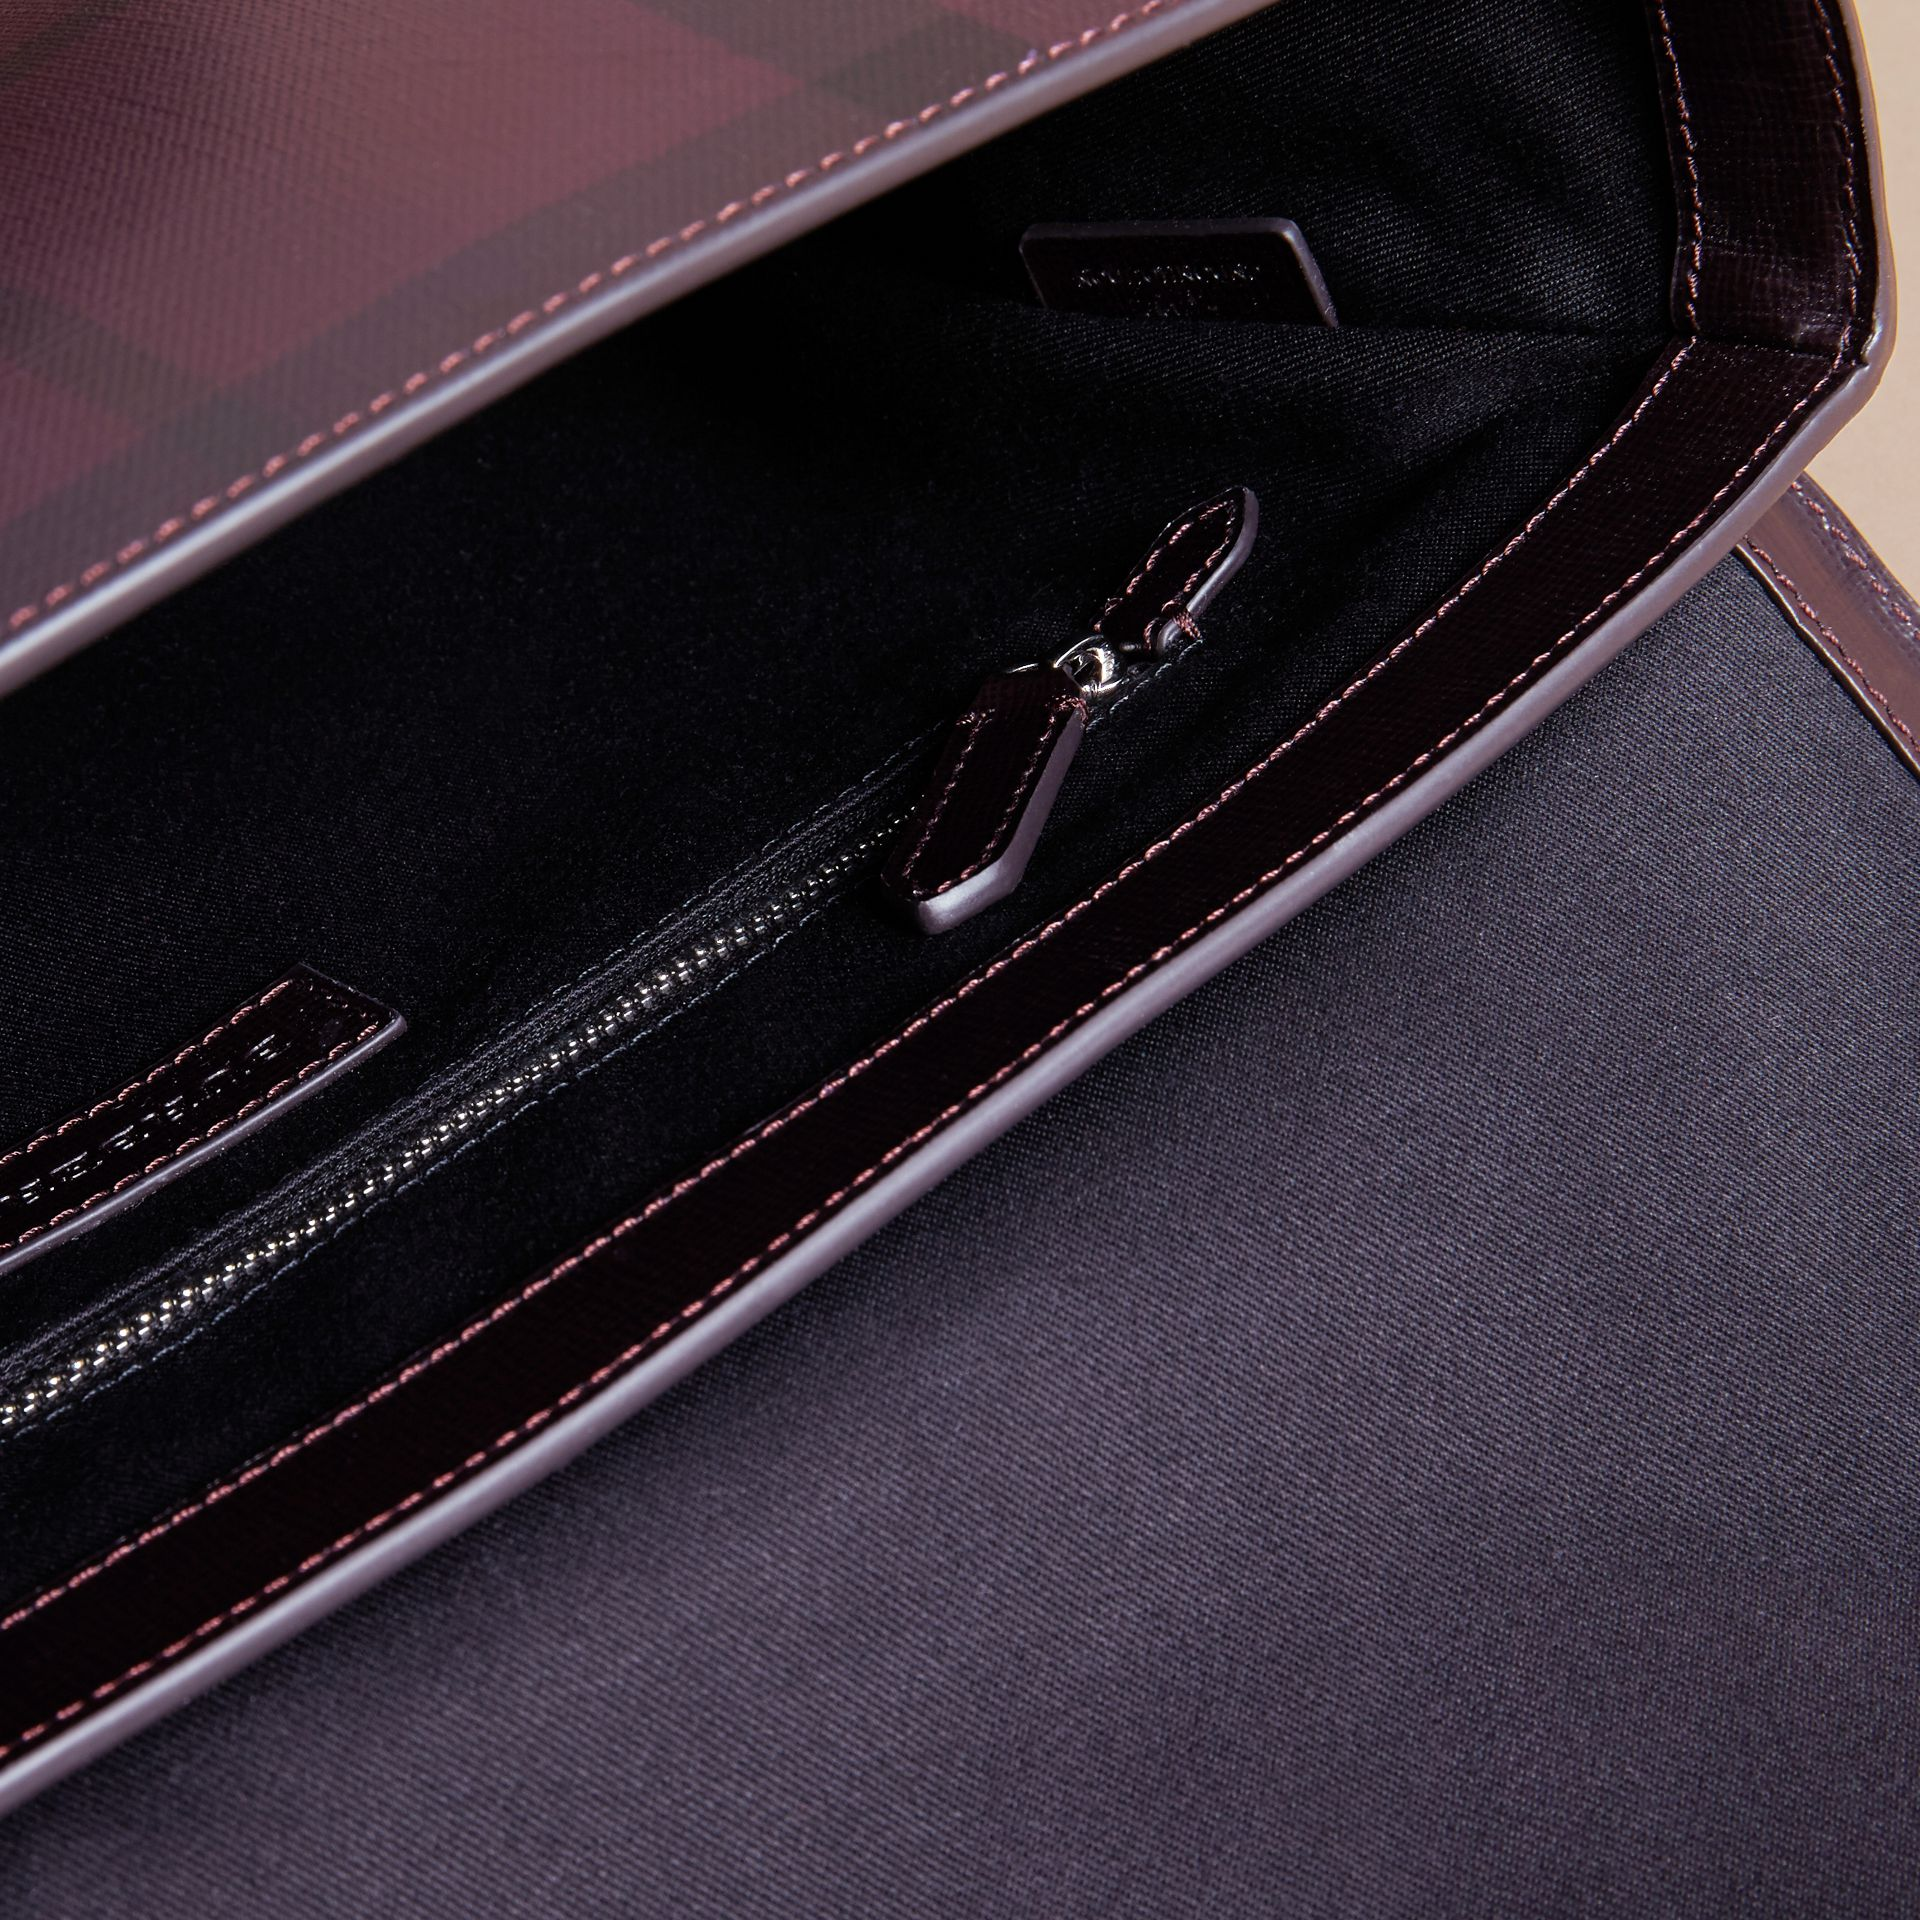 Medium Leather Trim London Check Messenger Bag in Deep Claret - Men | Burberry - gallery image 5